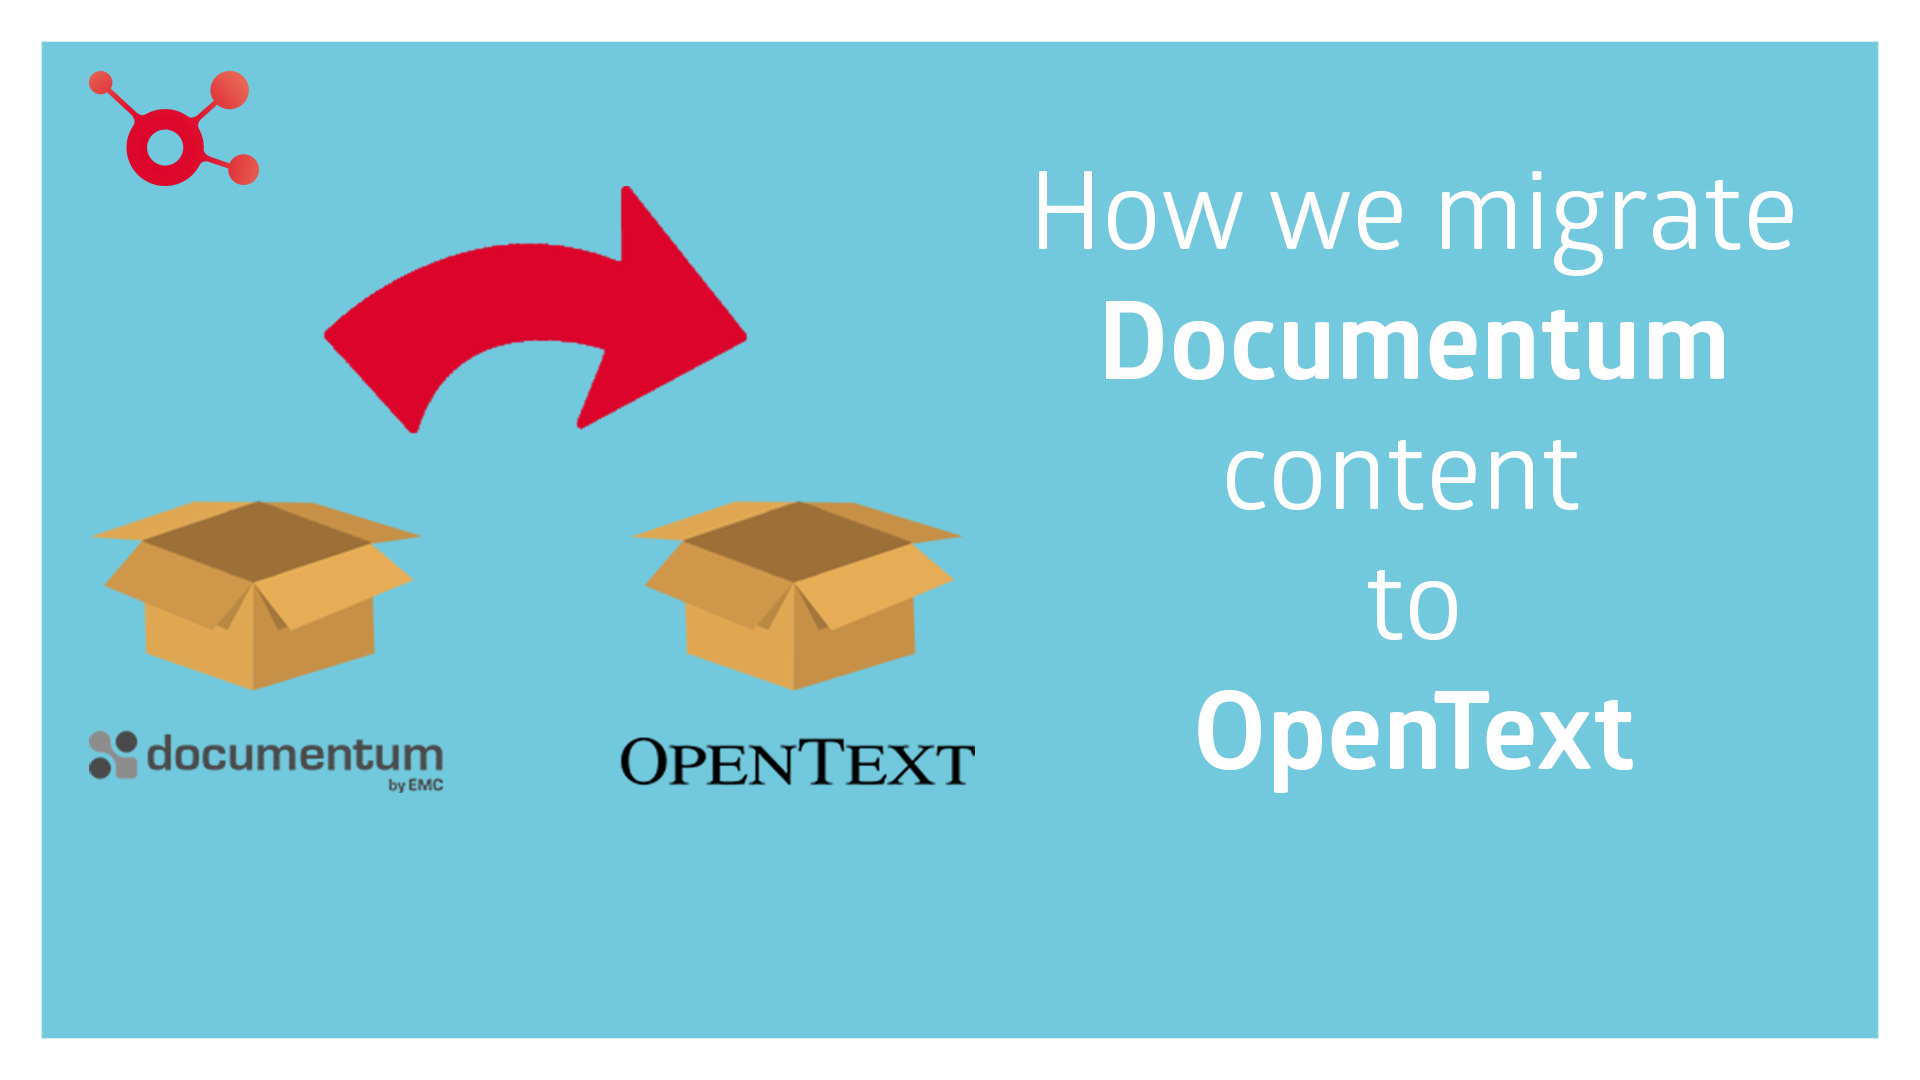 Documentum to OpenText video